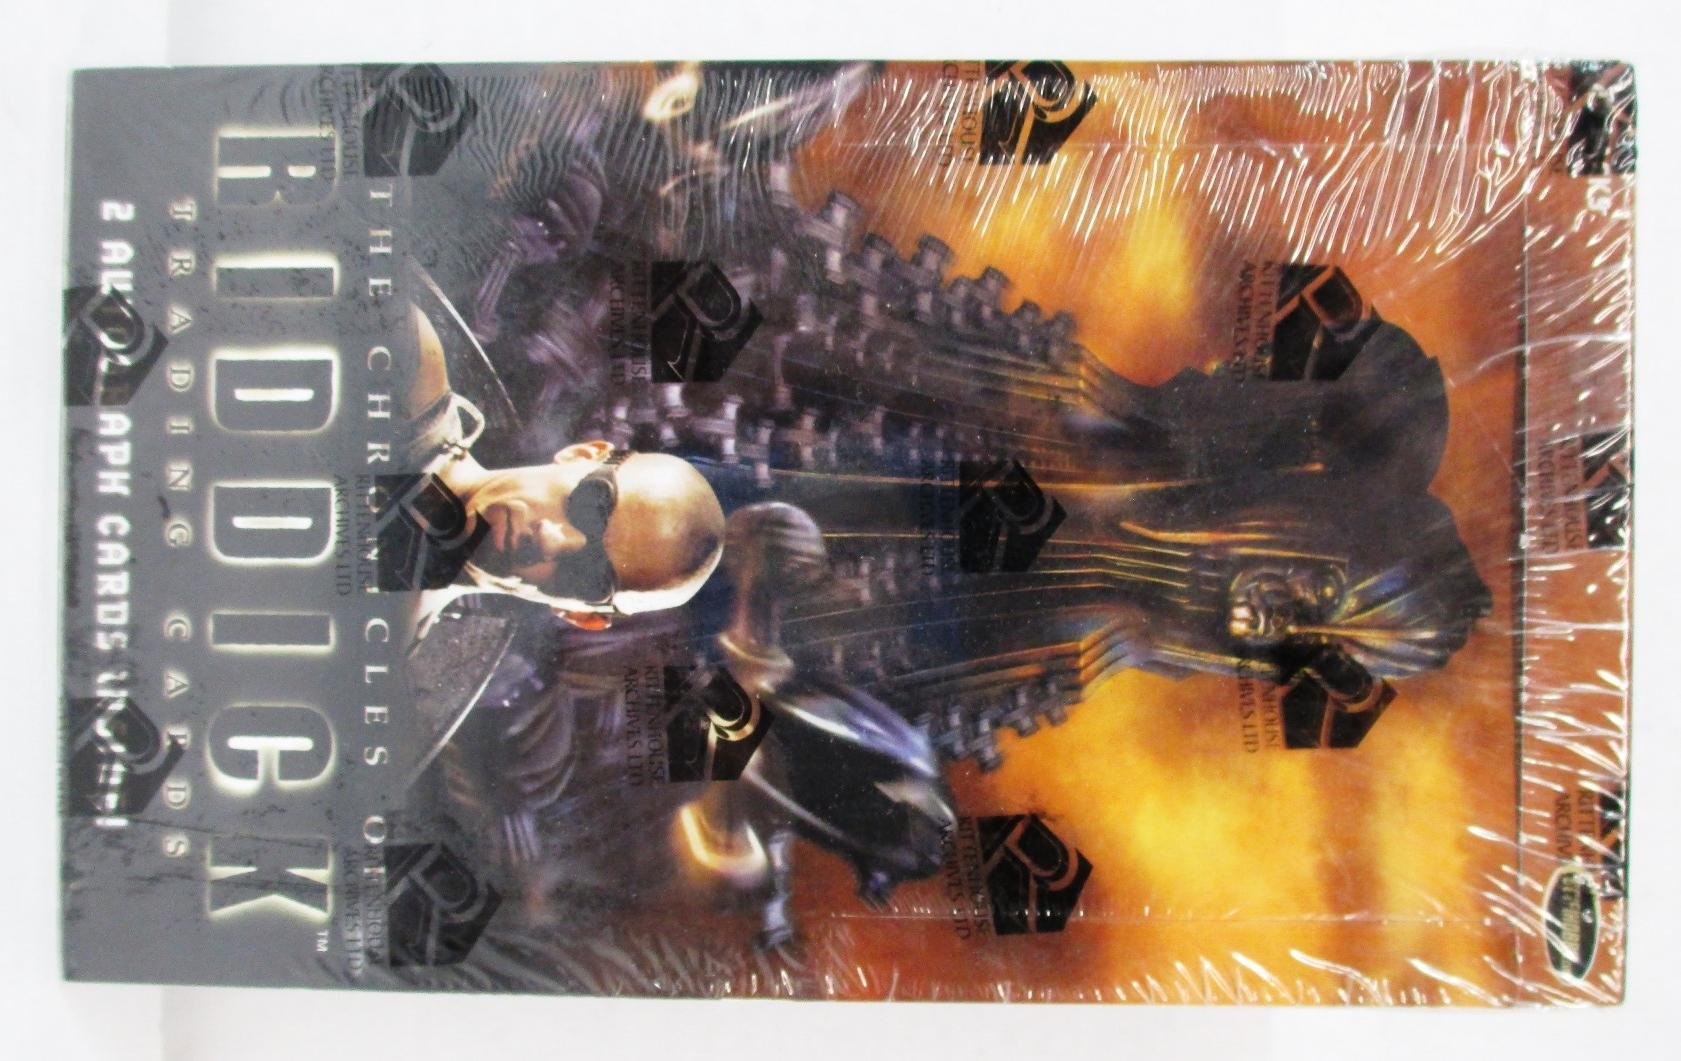 The Chronicles of Riddick Trading Cards Box Set with 2 Autograph Cards by The Chronicles of Riddick